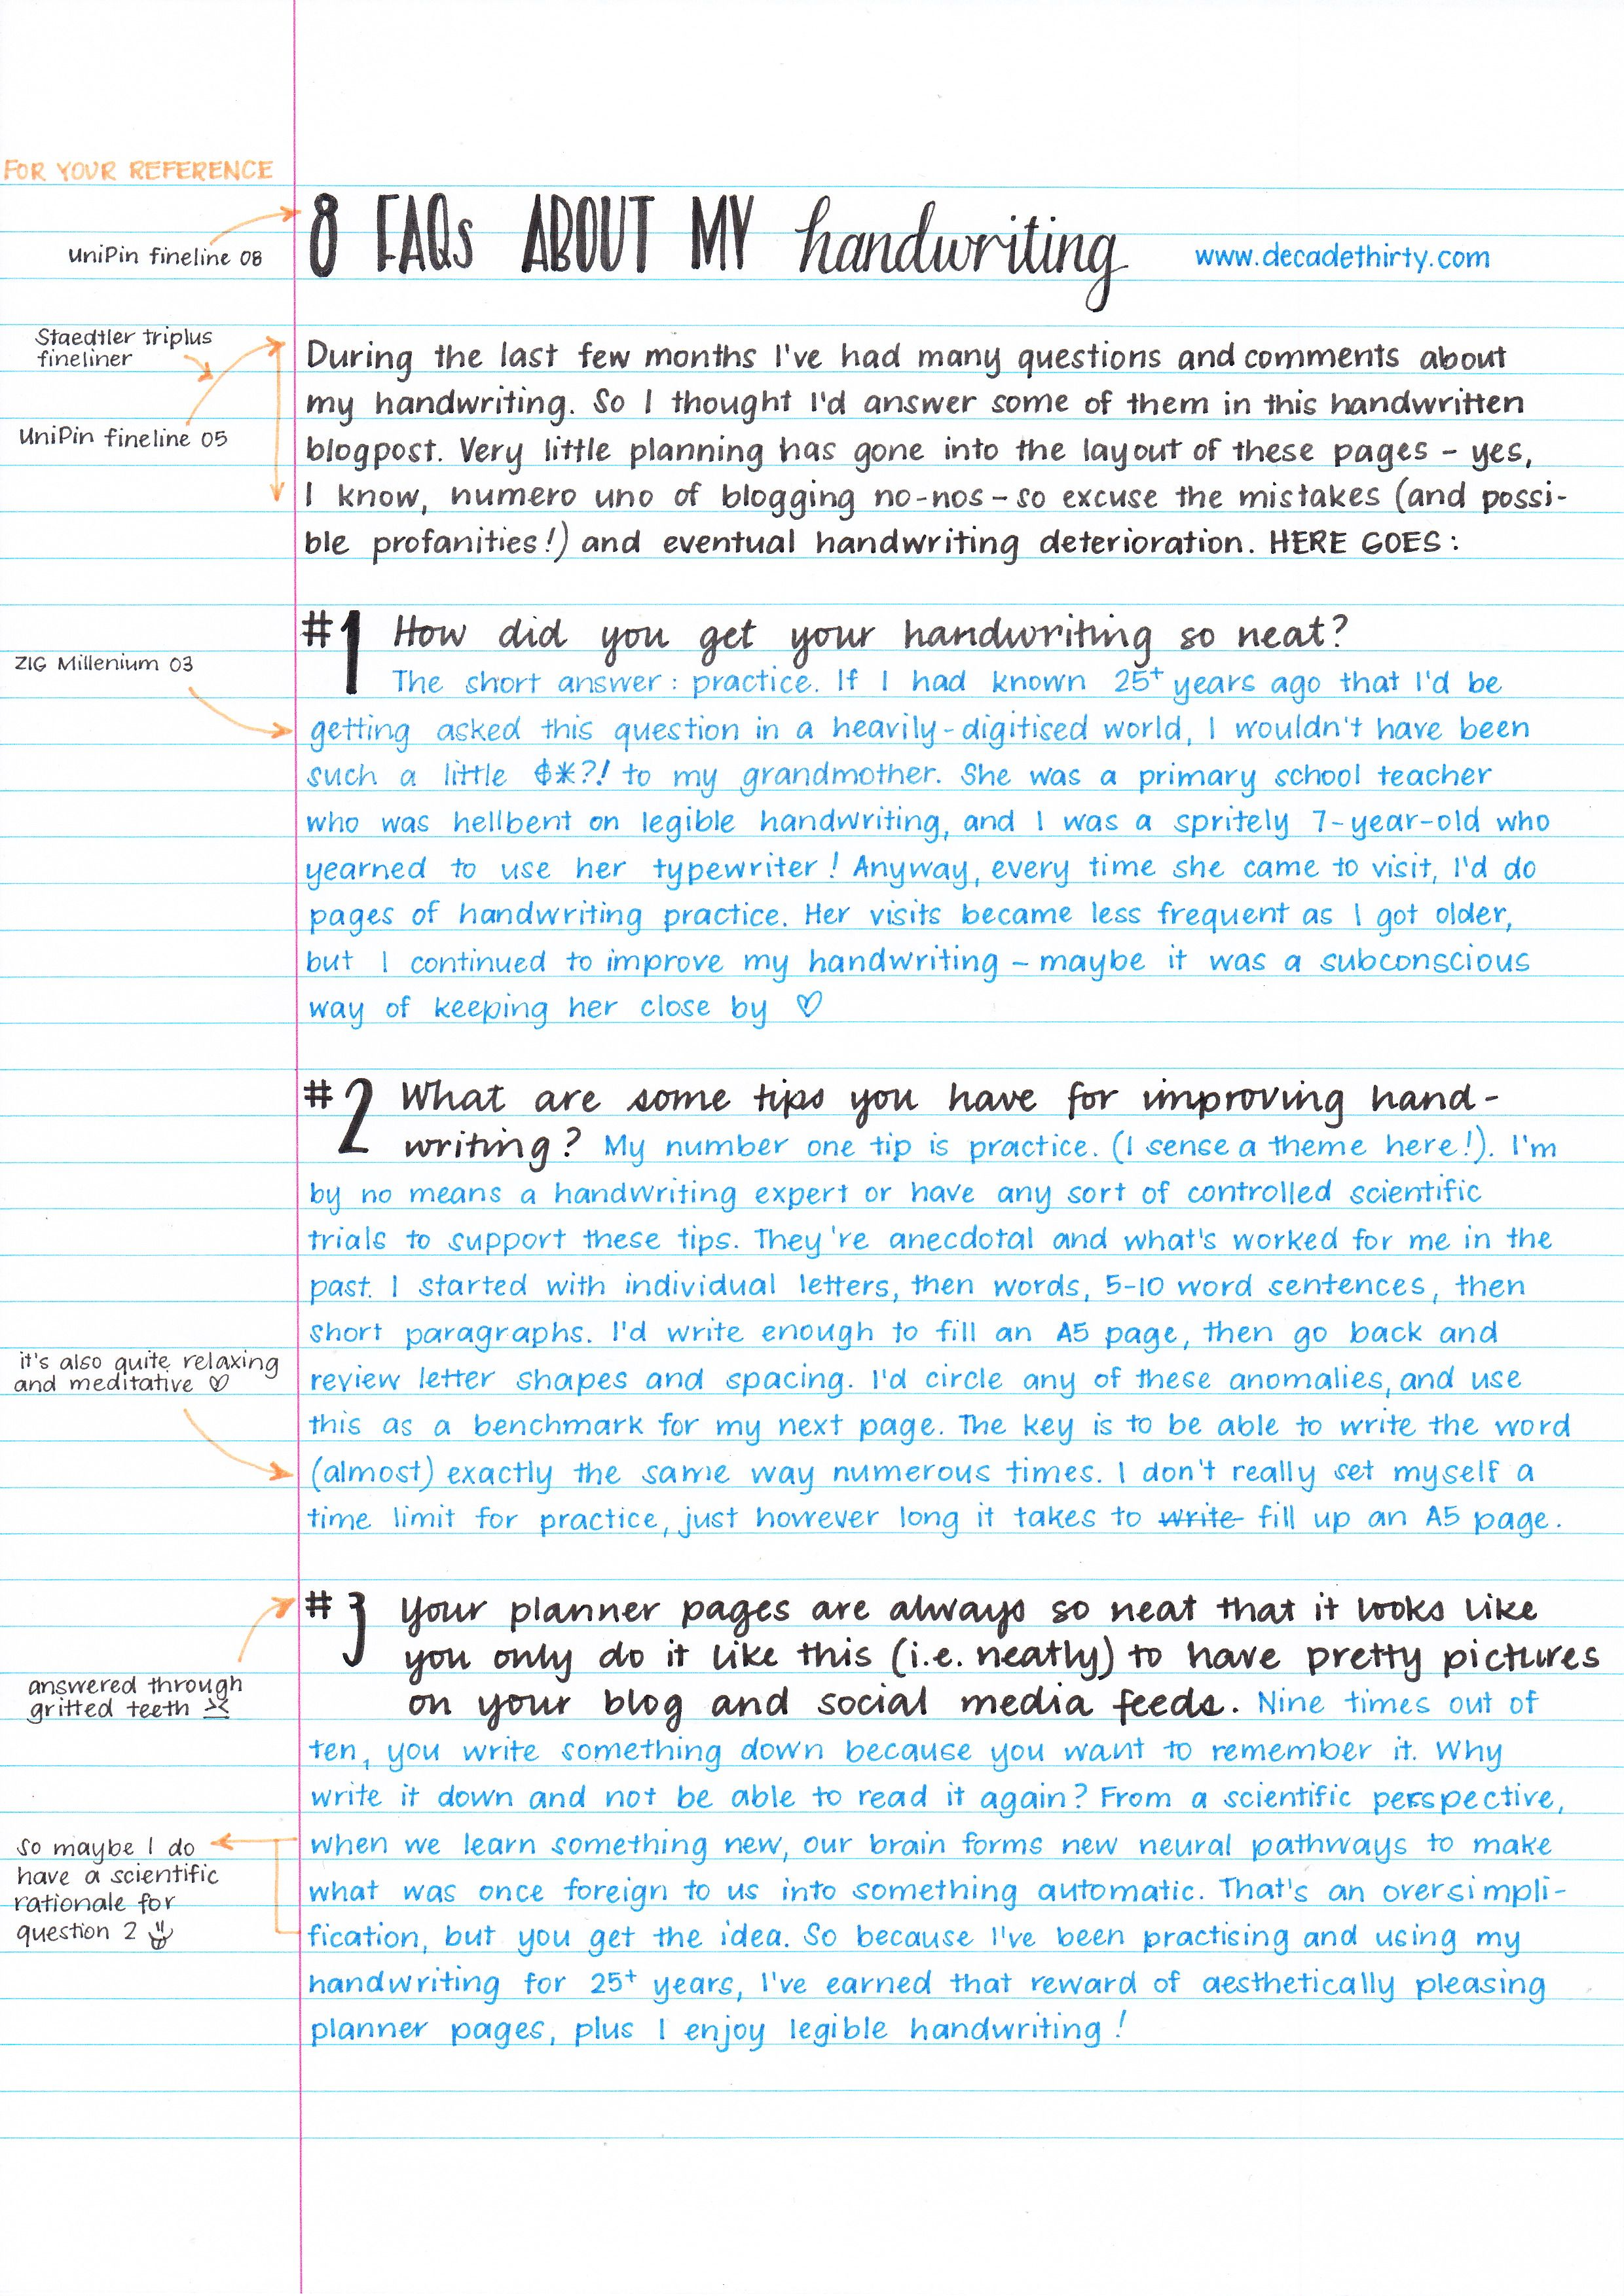 Handwriting Practice Pages And This Blogger Has A Lot Of